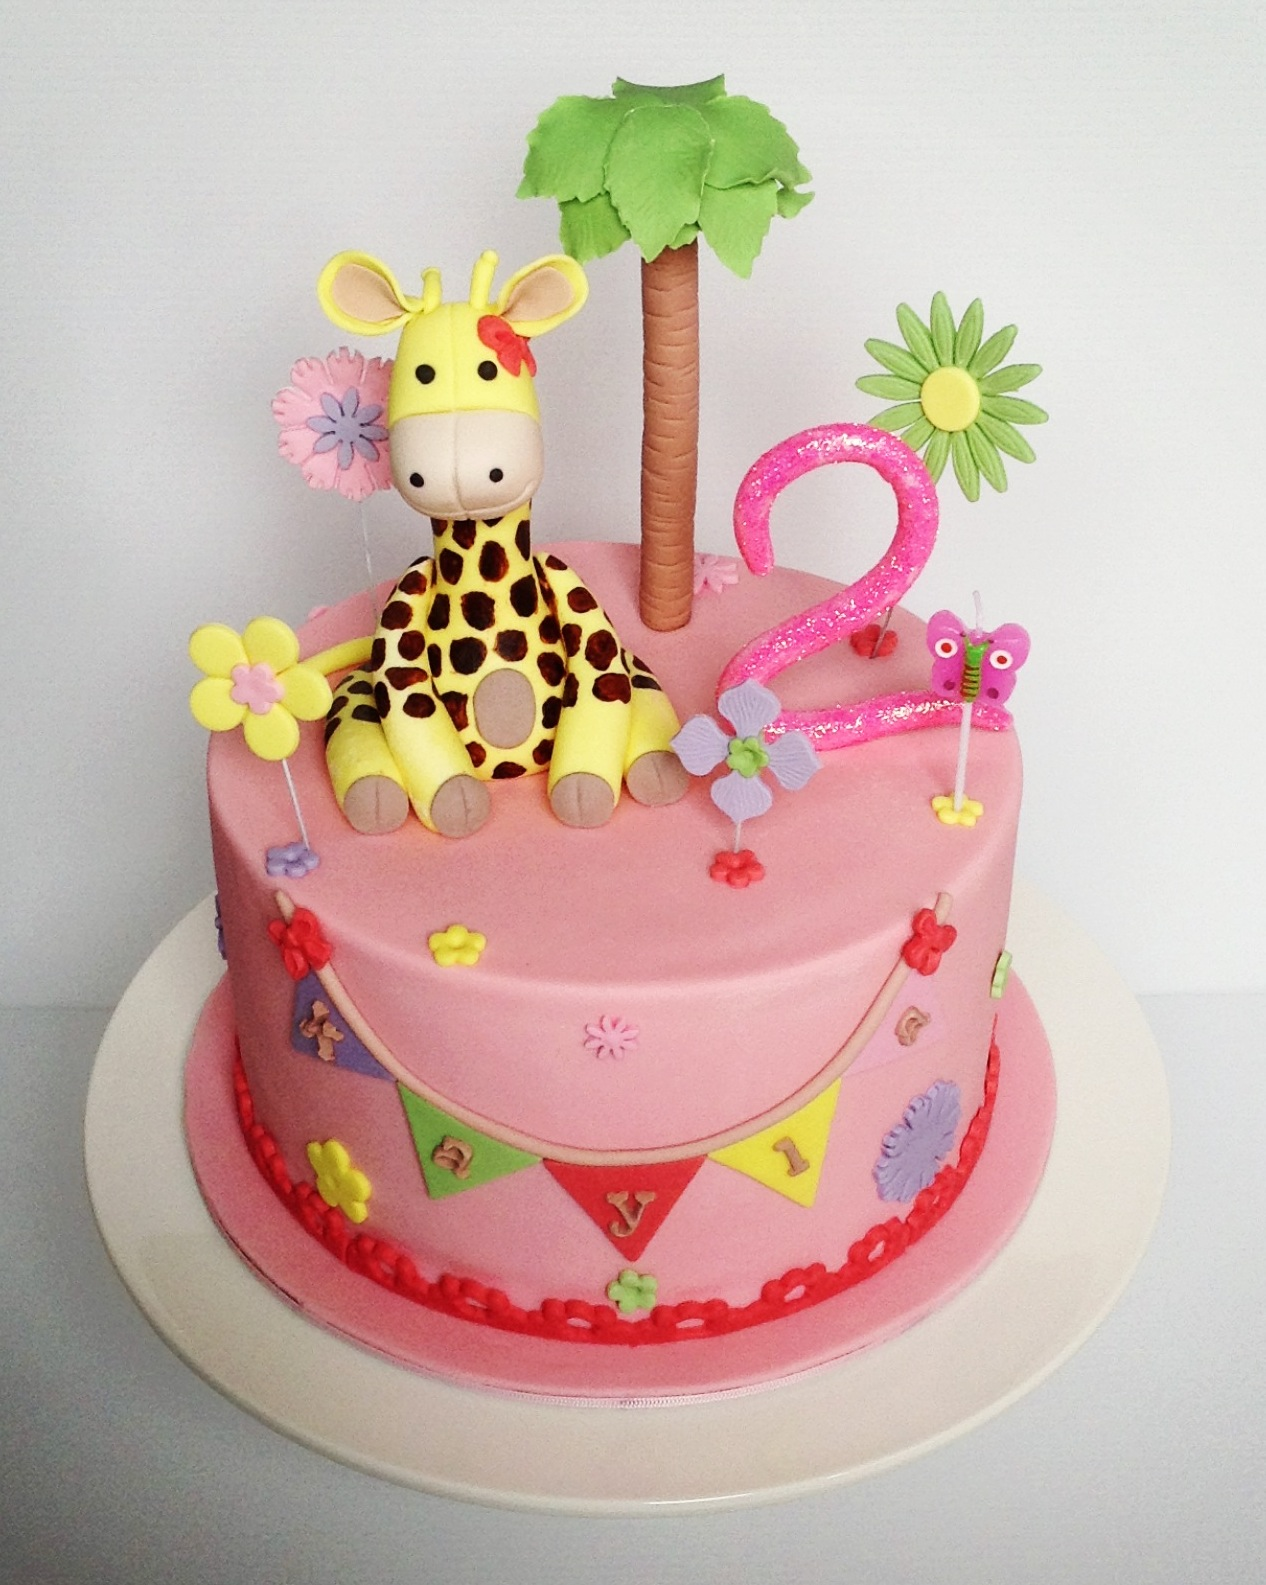 Heavenly Dlights Girly Giraffe Birthday Cake for Kayla